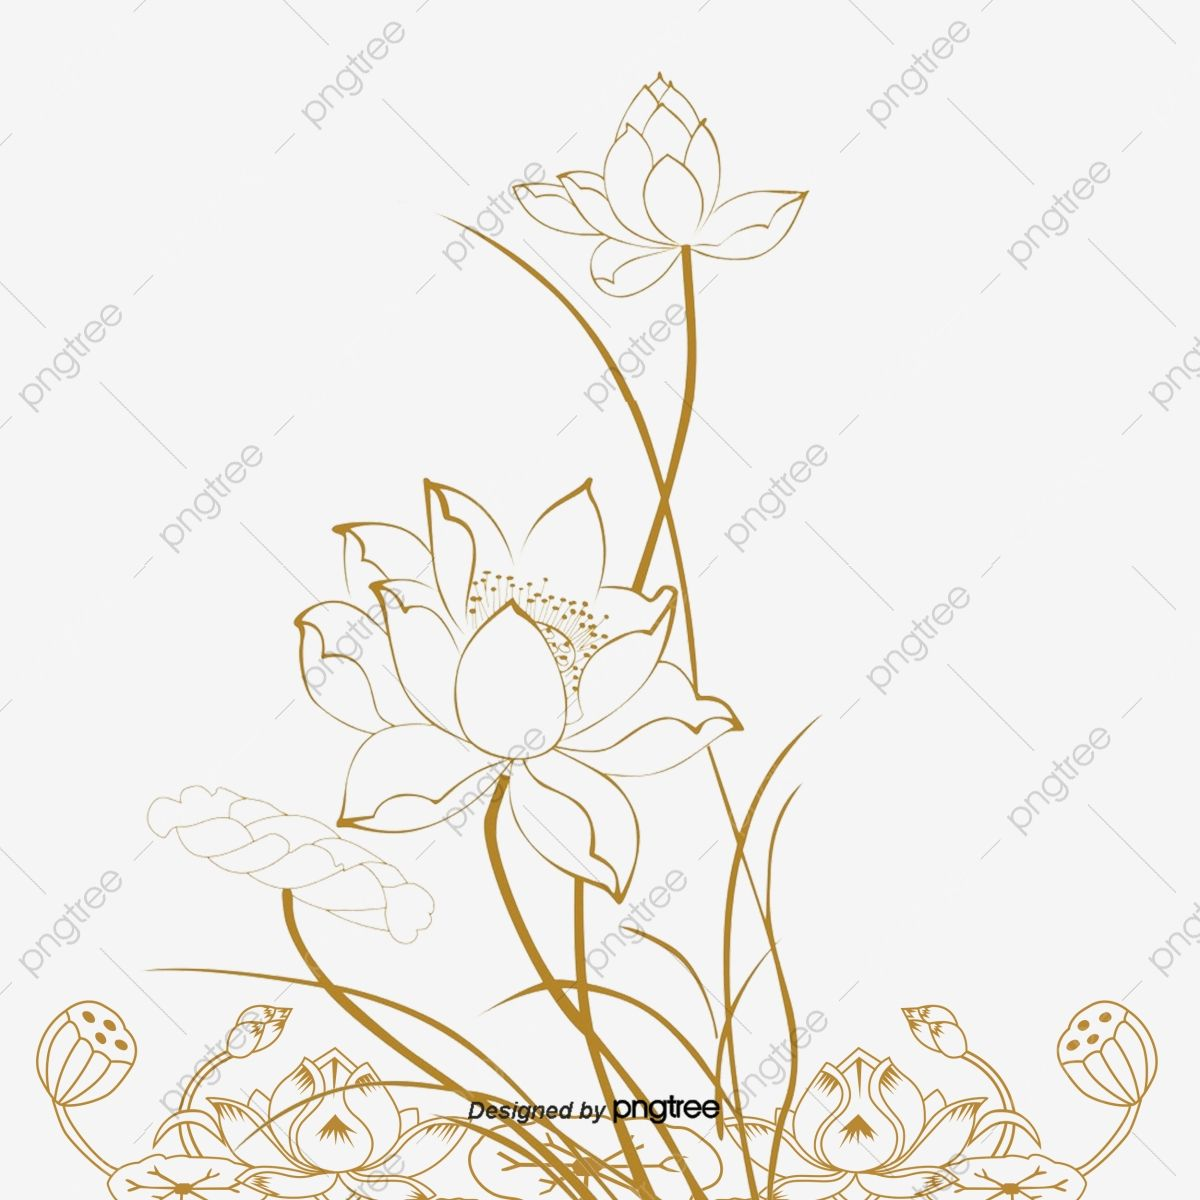 Lotus Vector Artwork, Lotus, Artwork, Vector PNG and